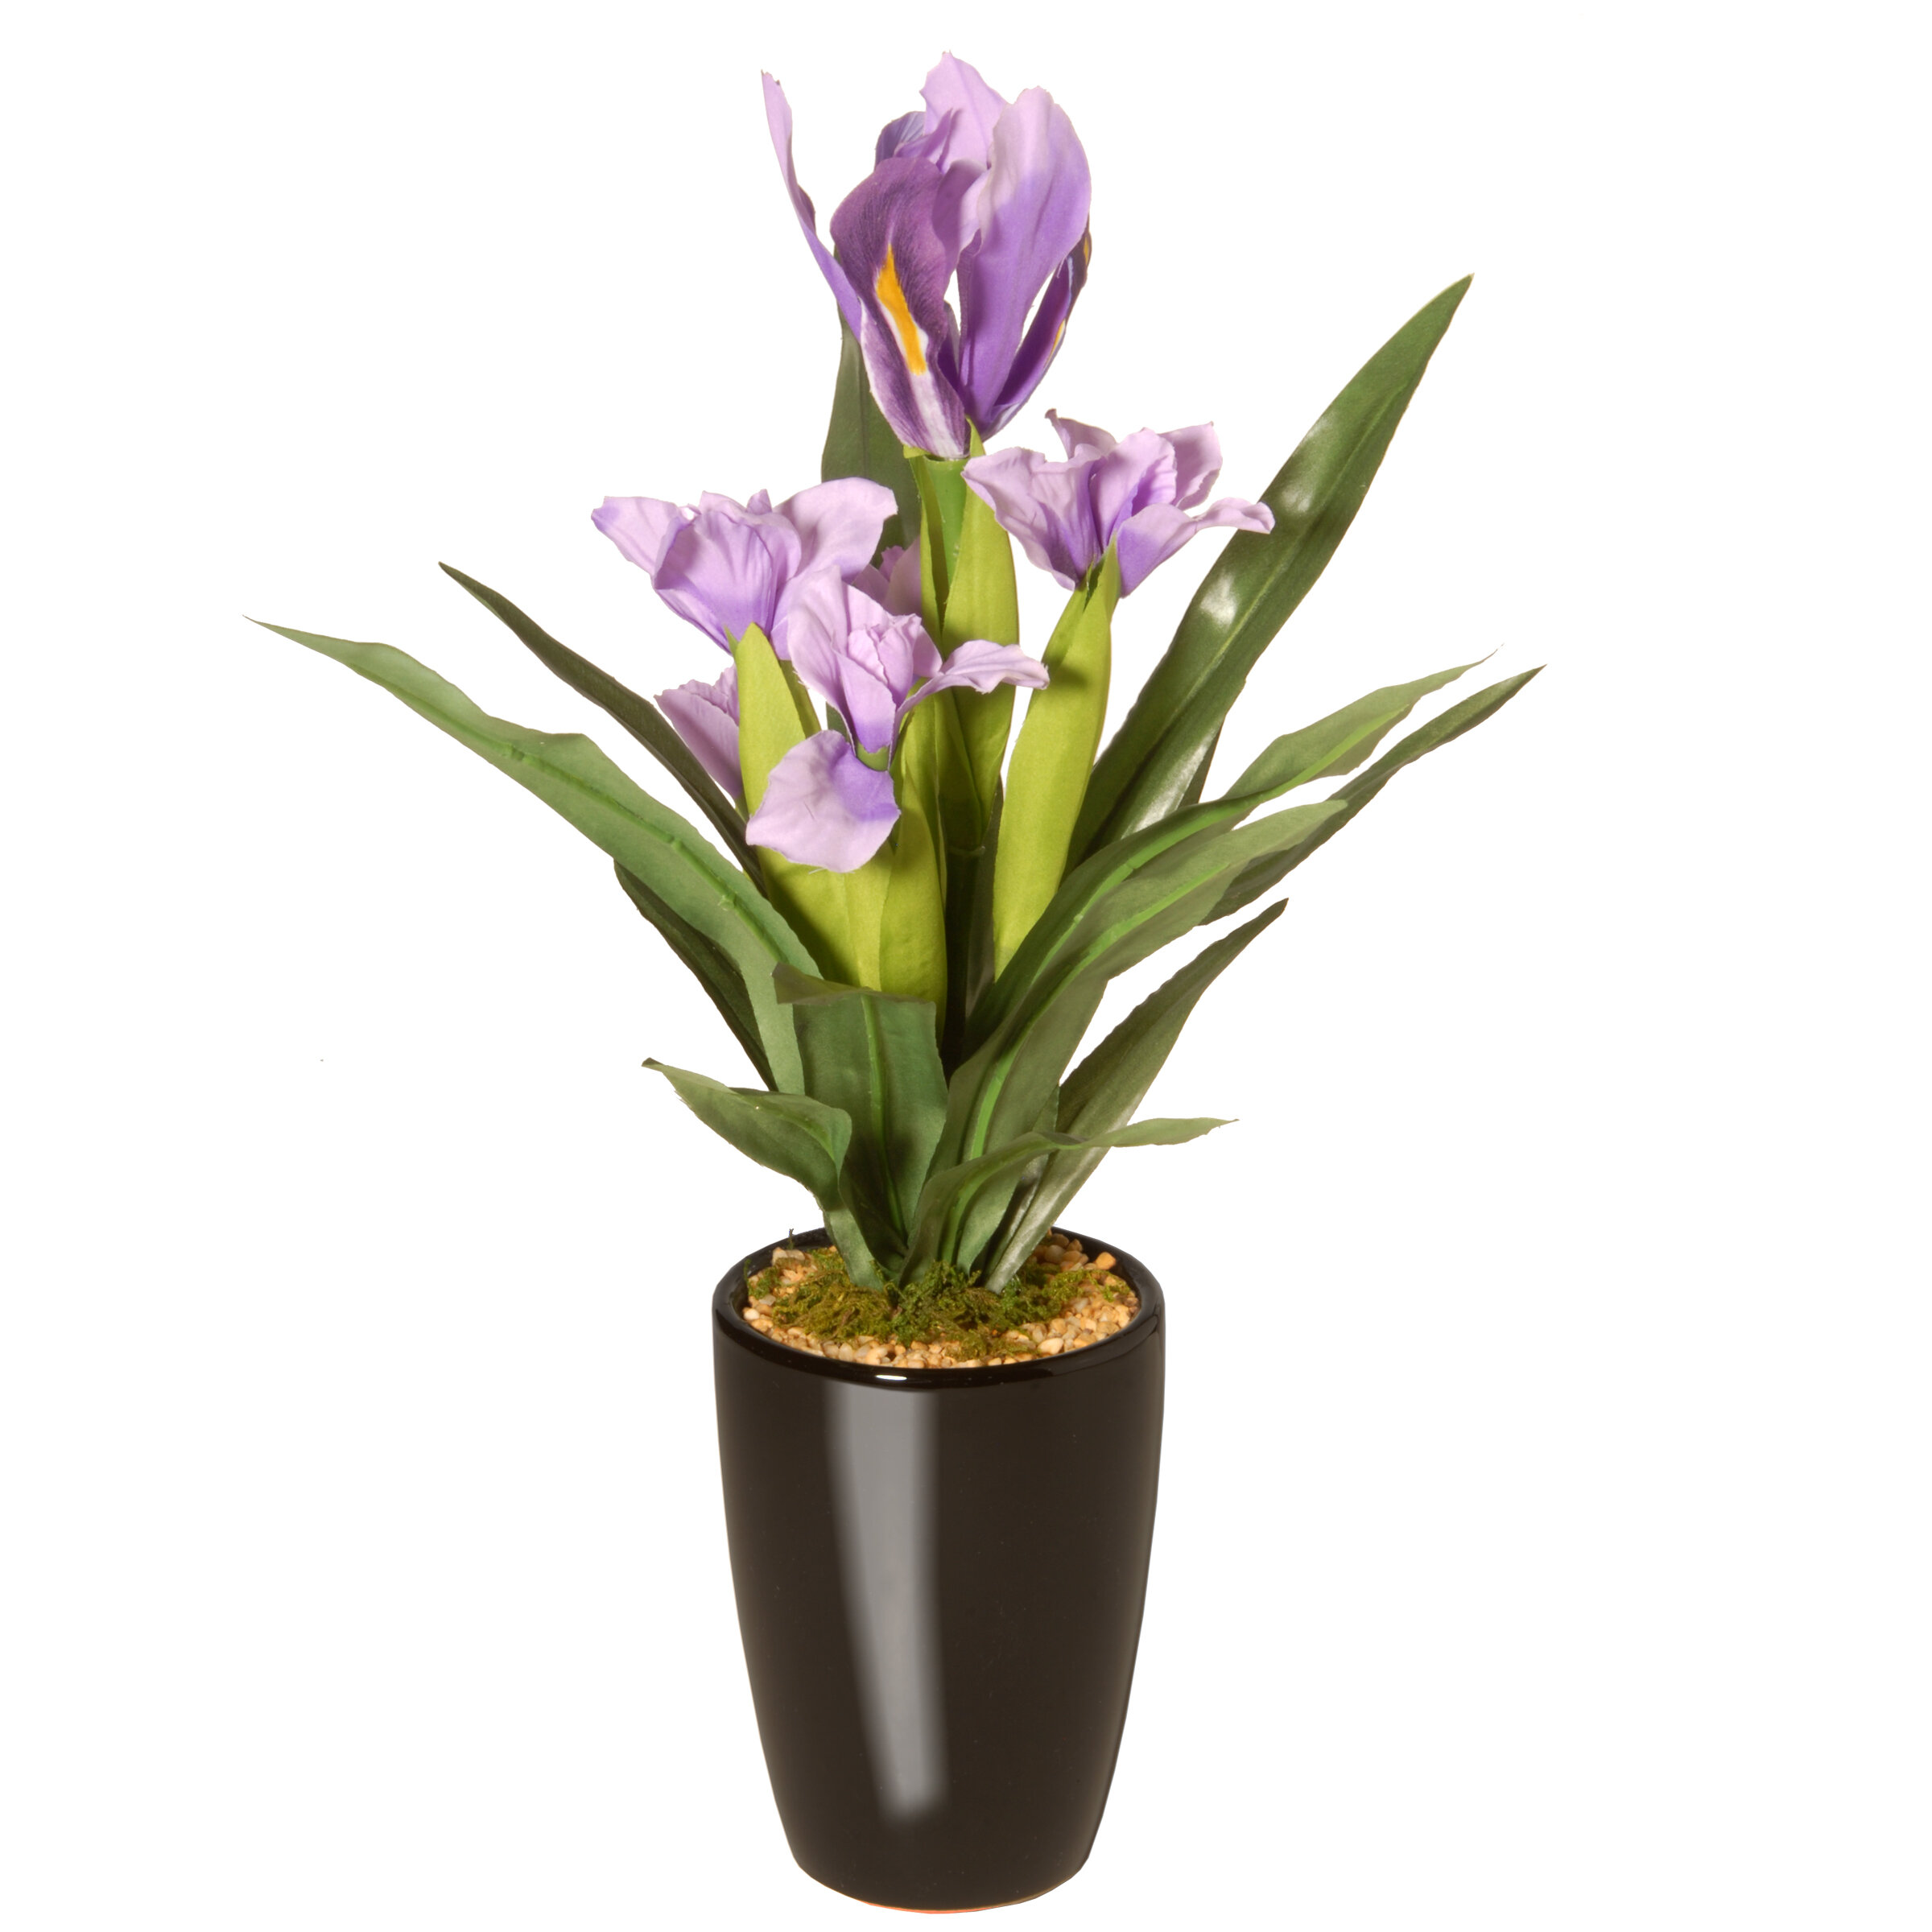 Charlton Home Potted Iris Floral Arrangement In Pot Wayfair